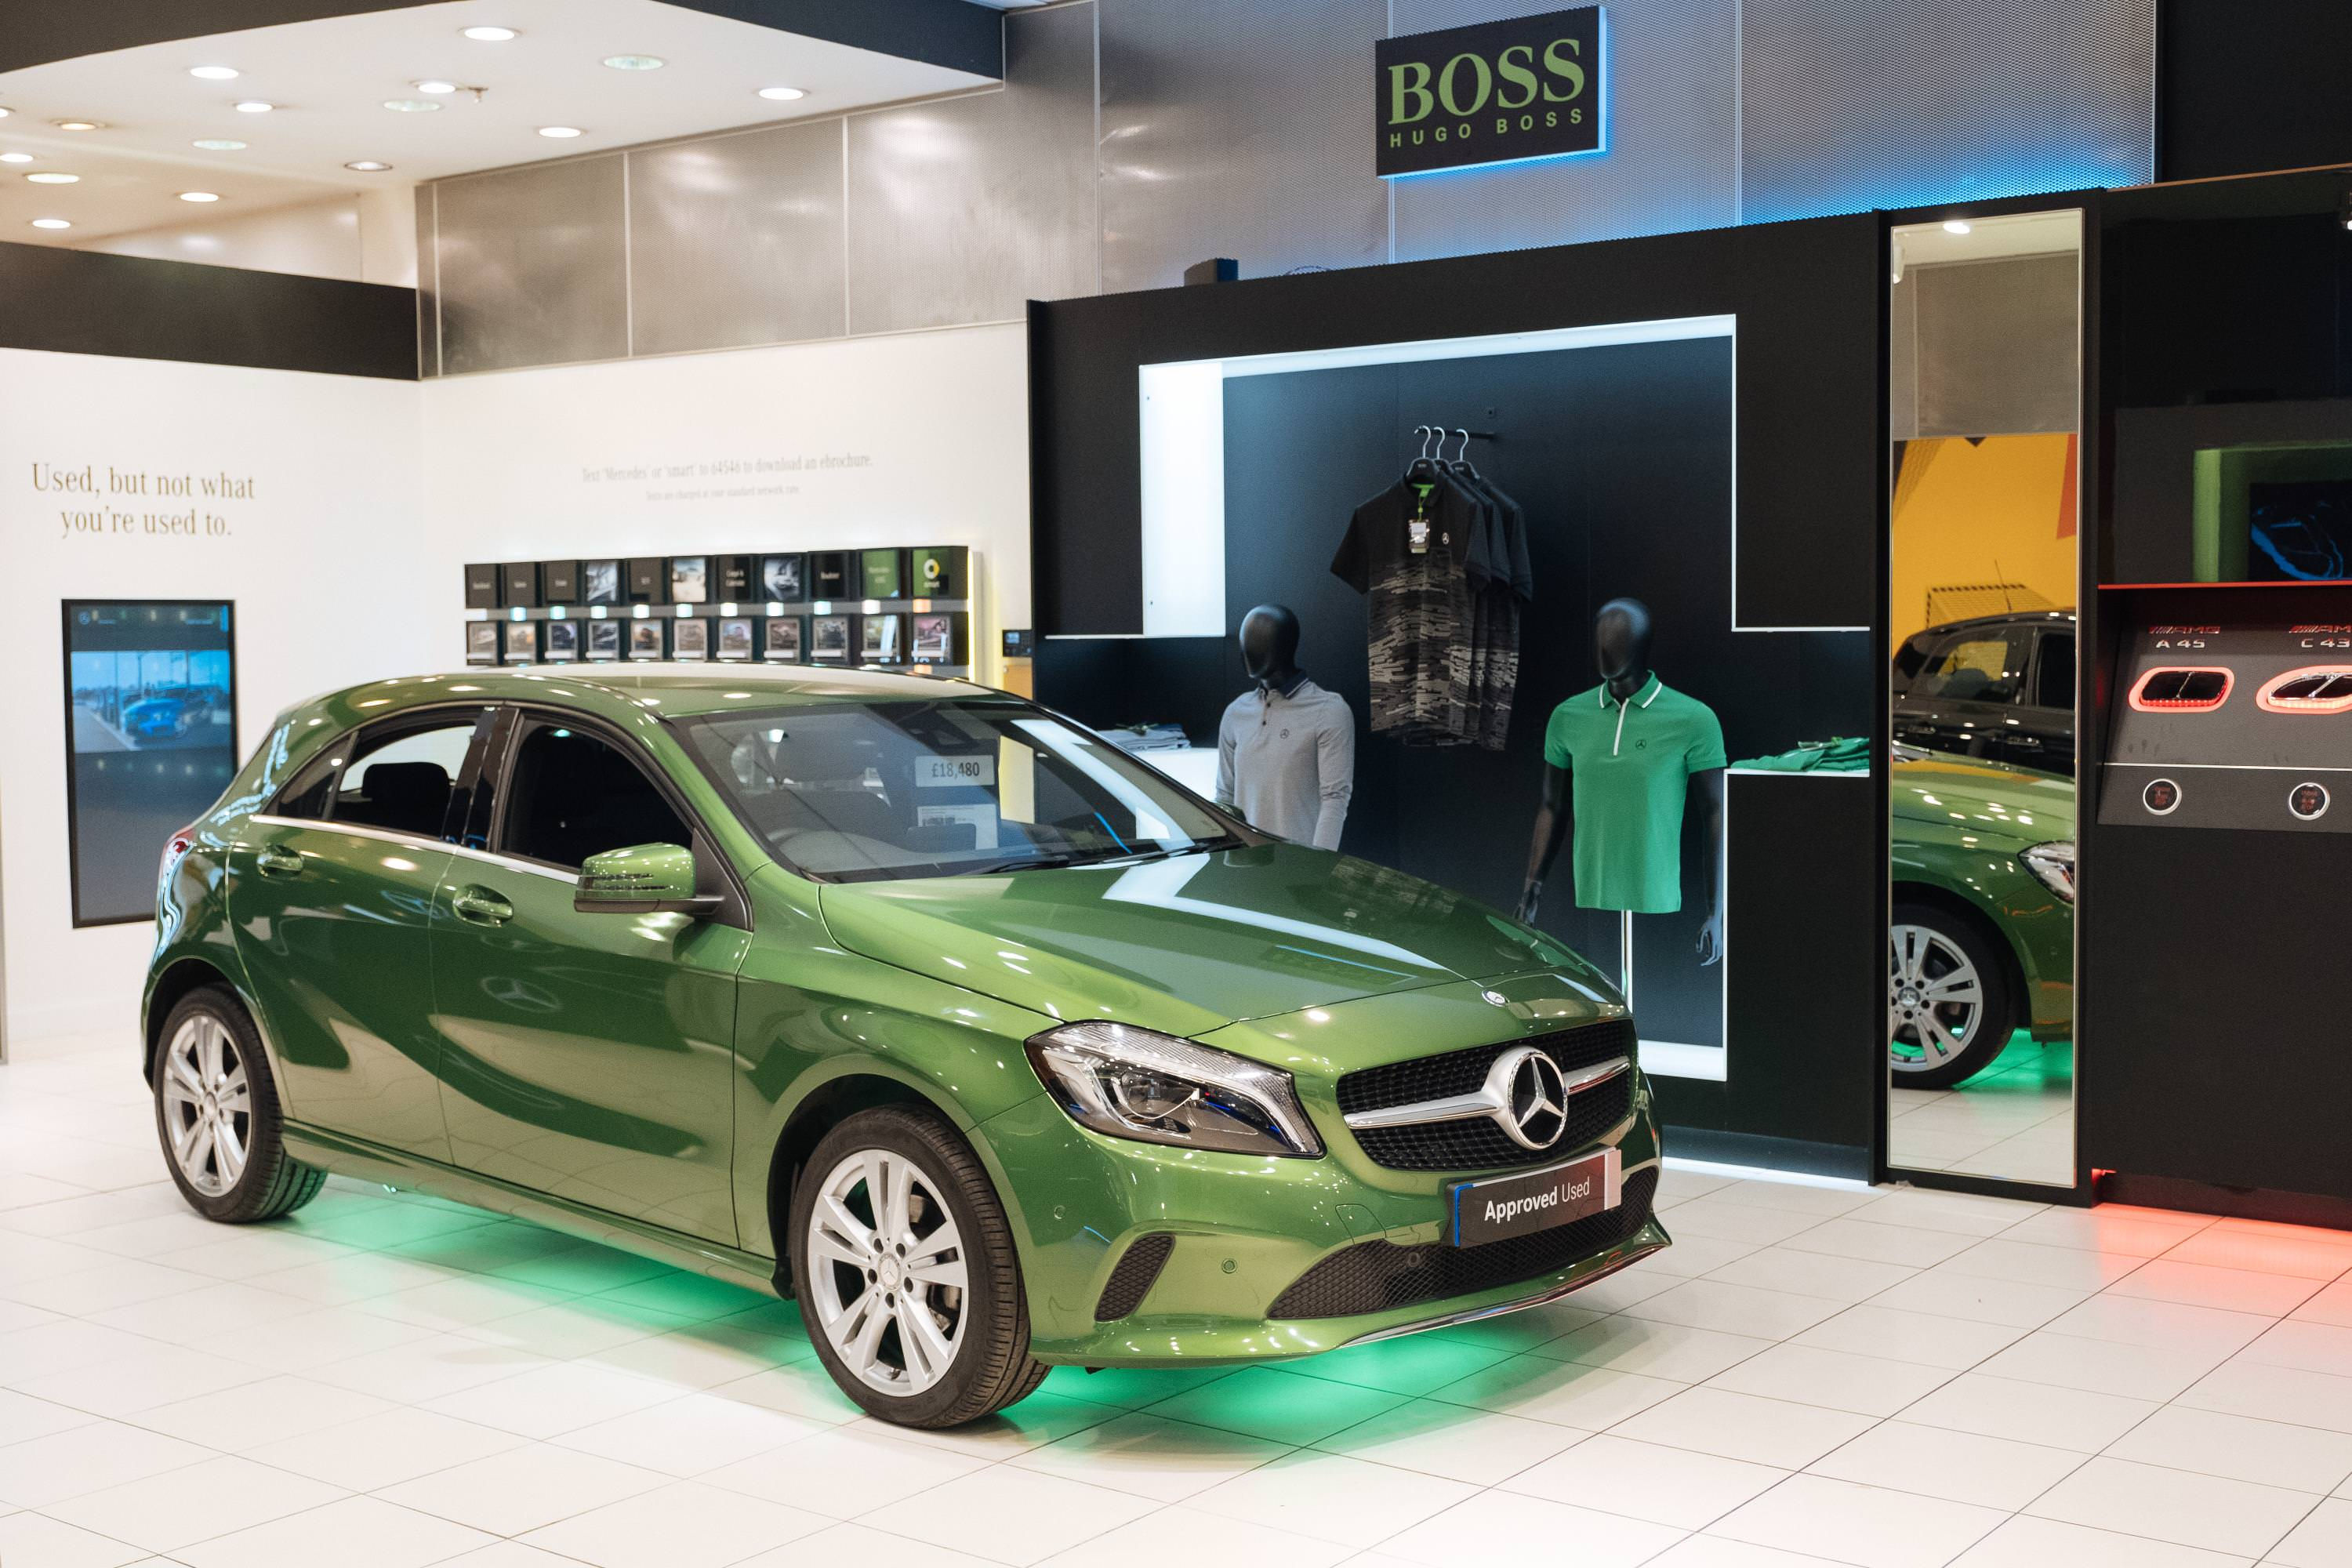 Candy Apple Green Mercedes parked inside retail shop